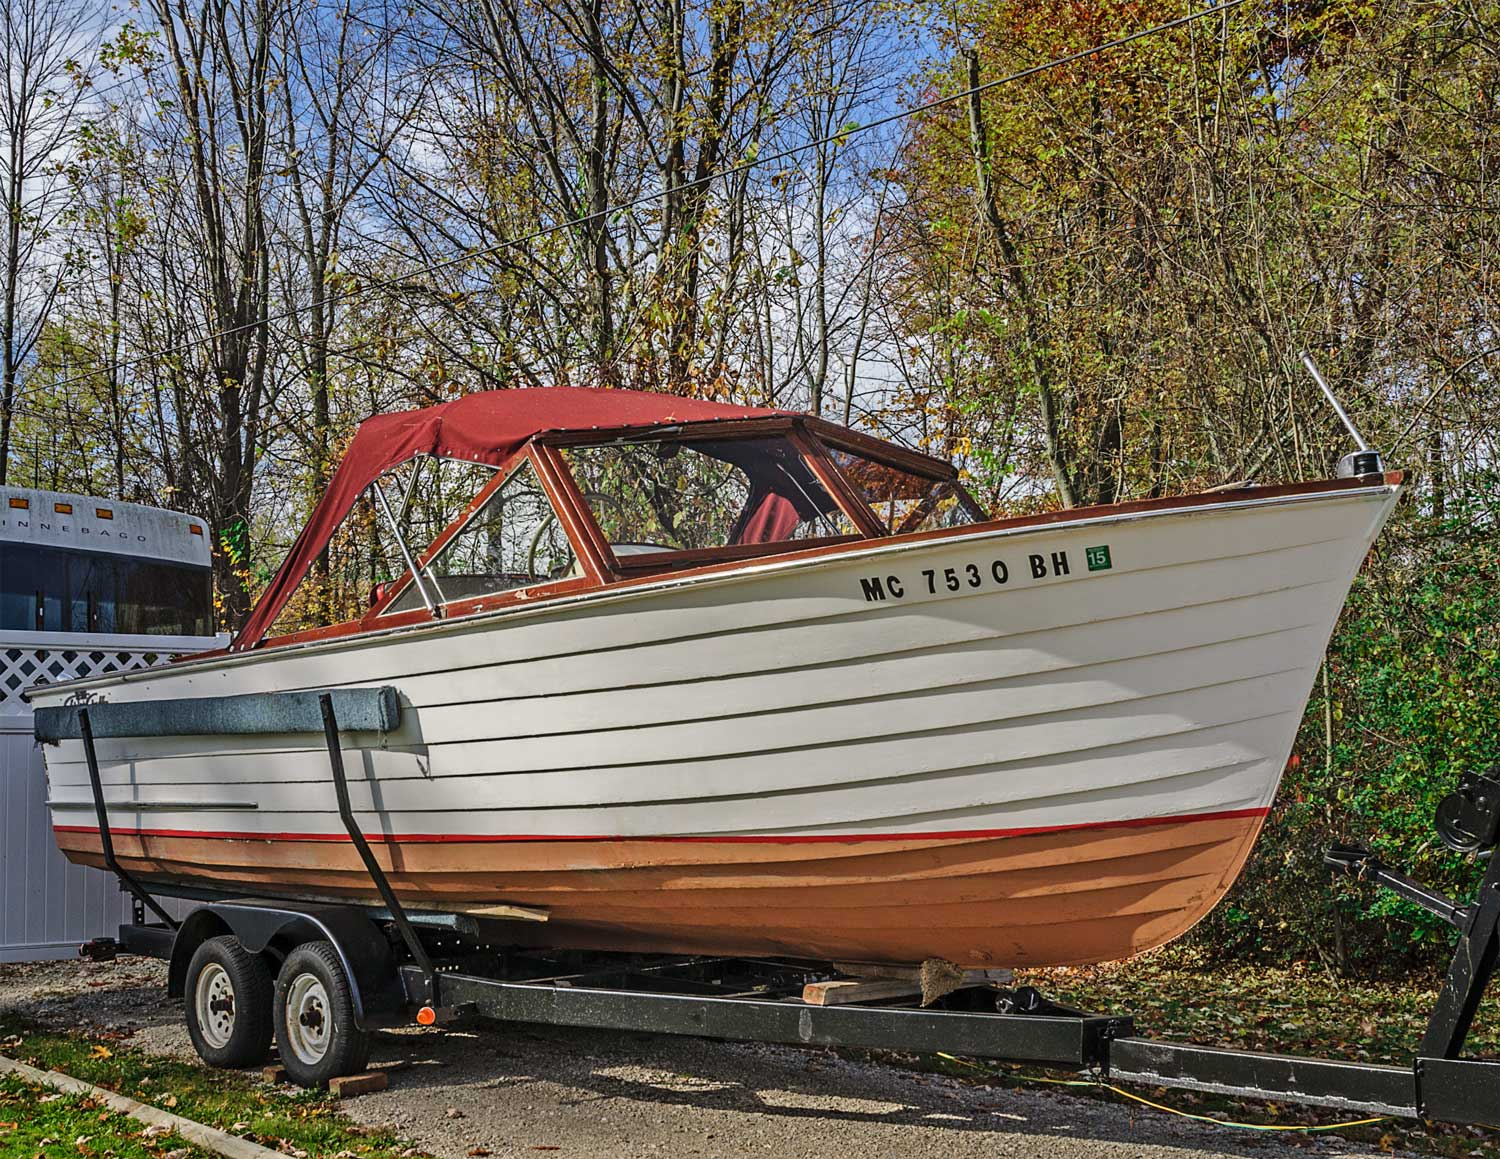 Oil Change Prices >> Cuthbertson Marine fixes engines and stores boats at a marina near Algonac, MI. There are 6 ...